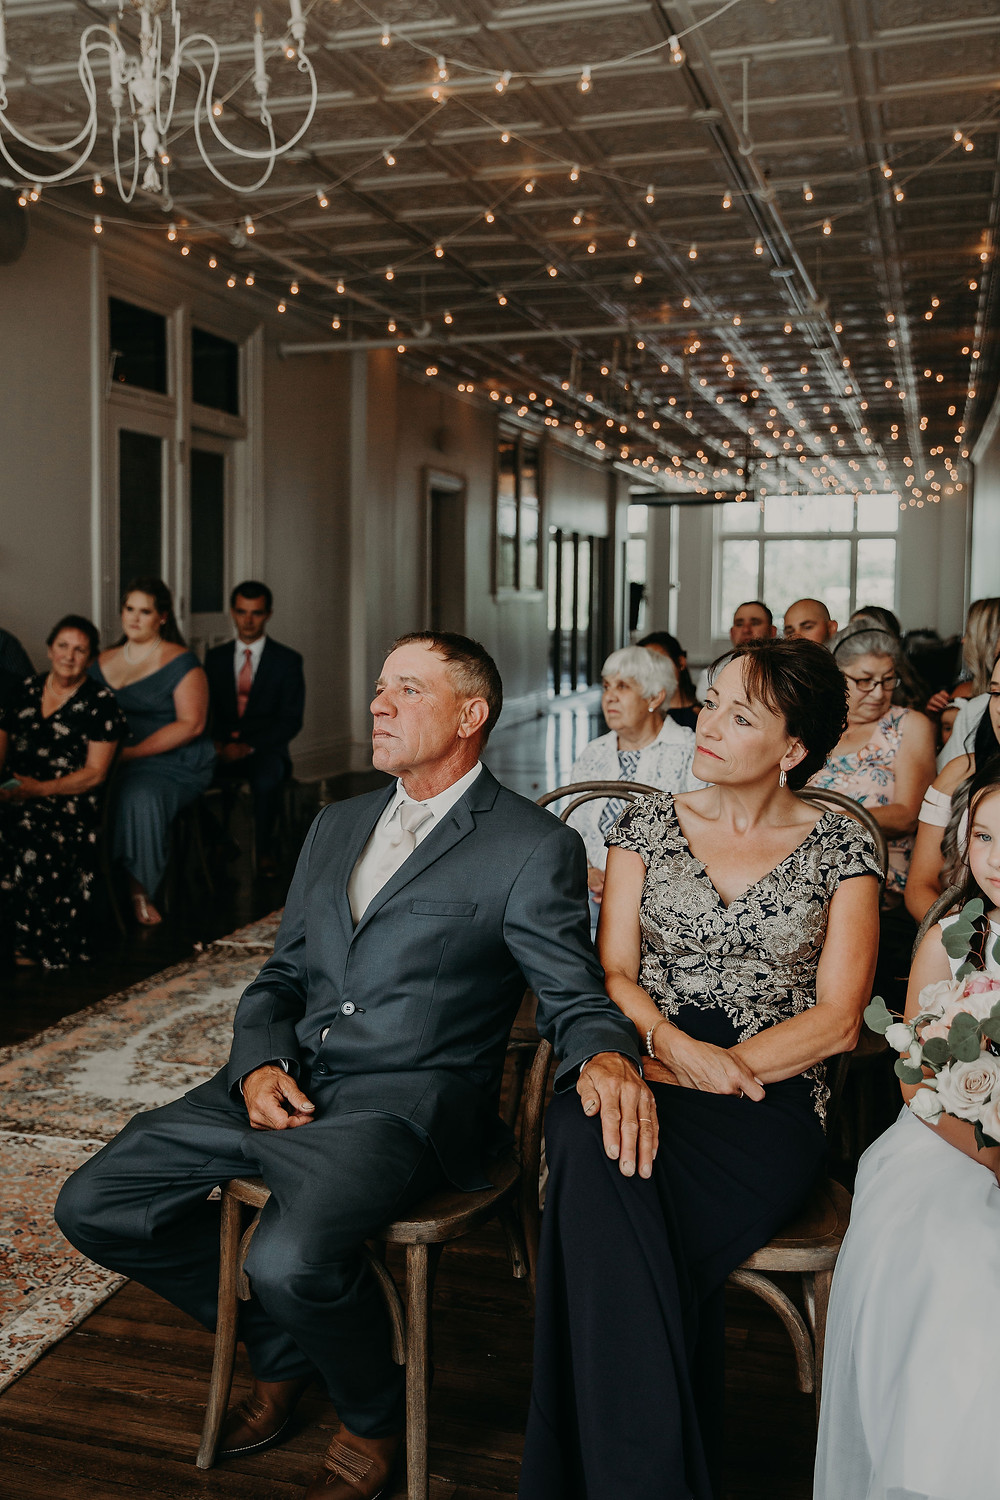 Summer Small Wedding at The Lincoln Loft by Pretty Little Vintage Co.